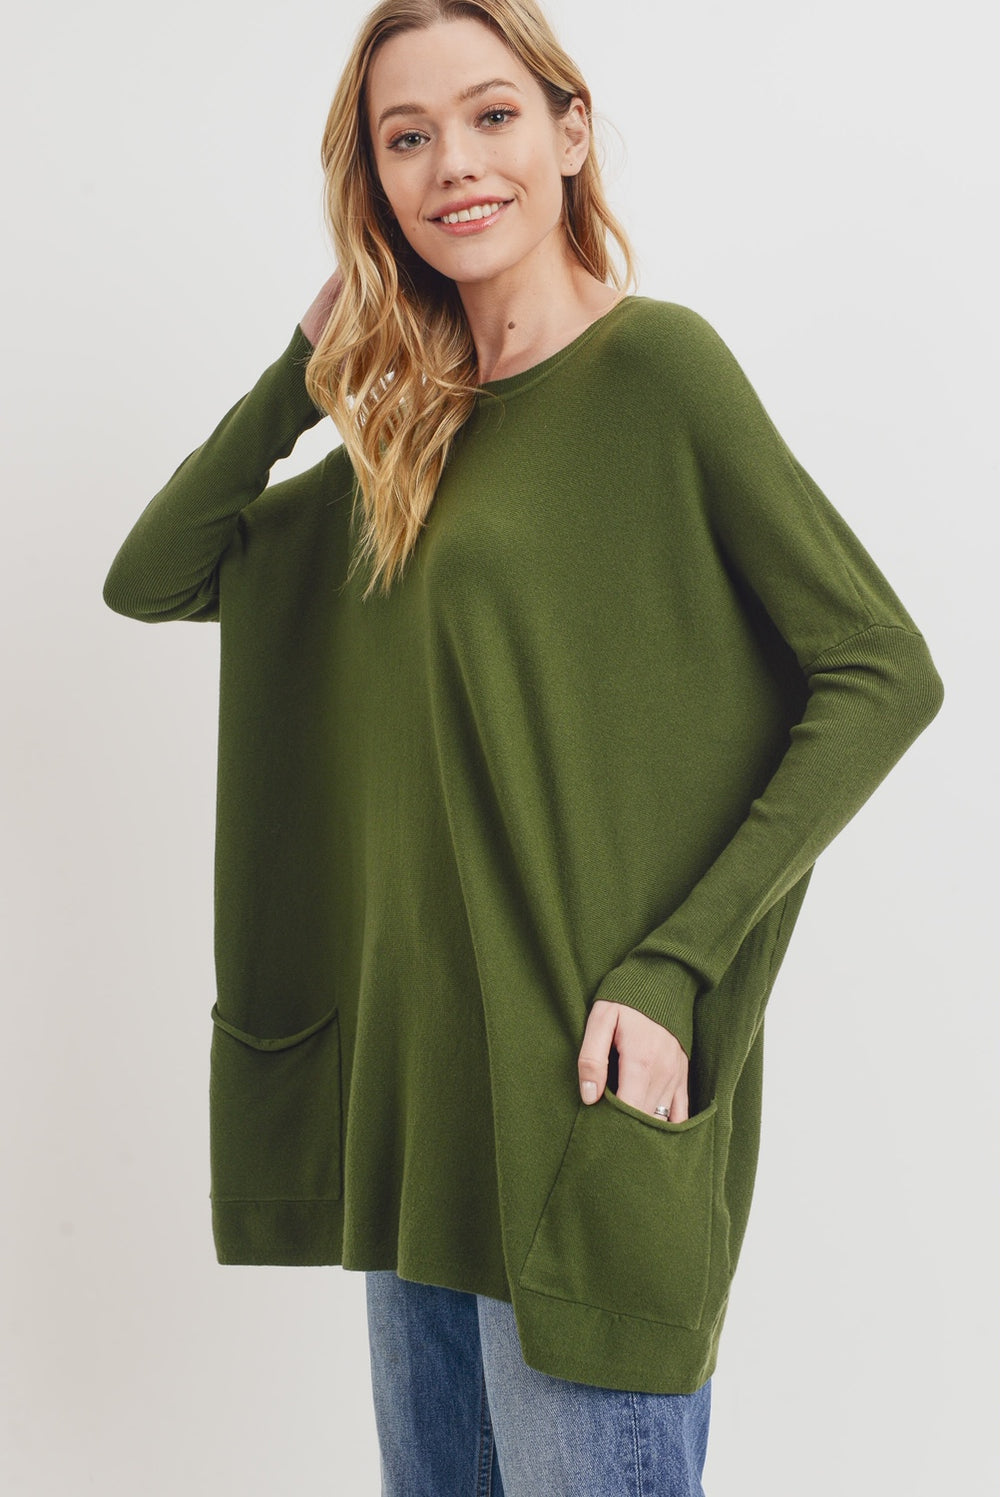 Michael Farrell sweater, 2-pocket oversized (8 colors)